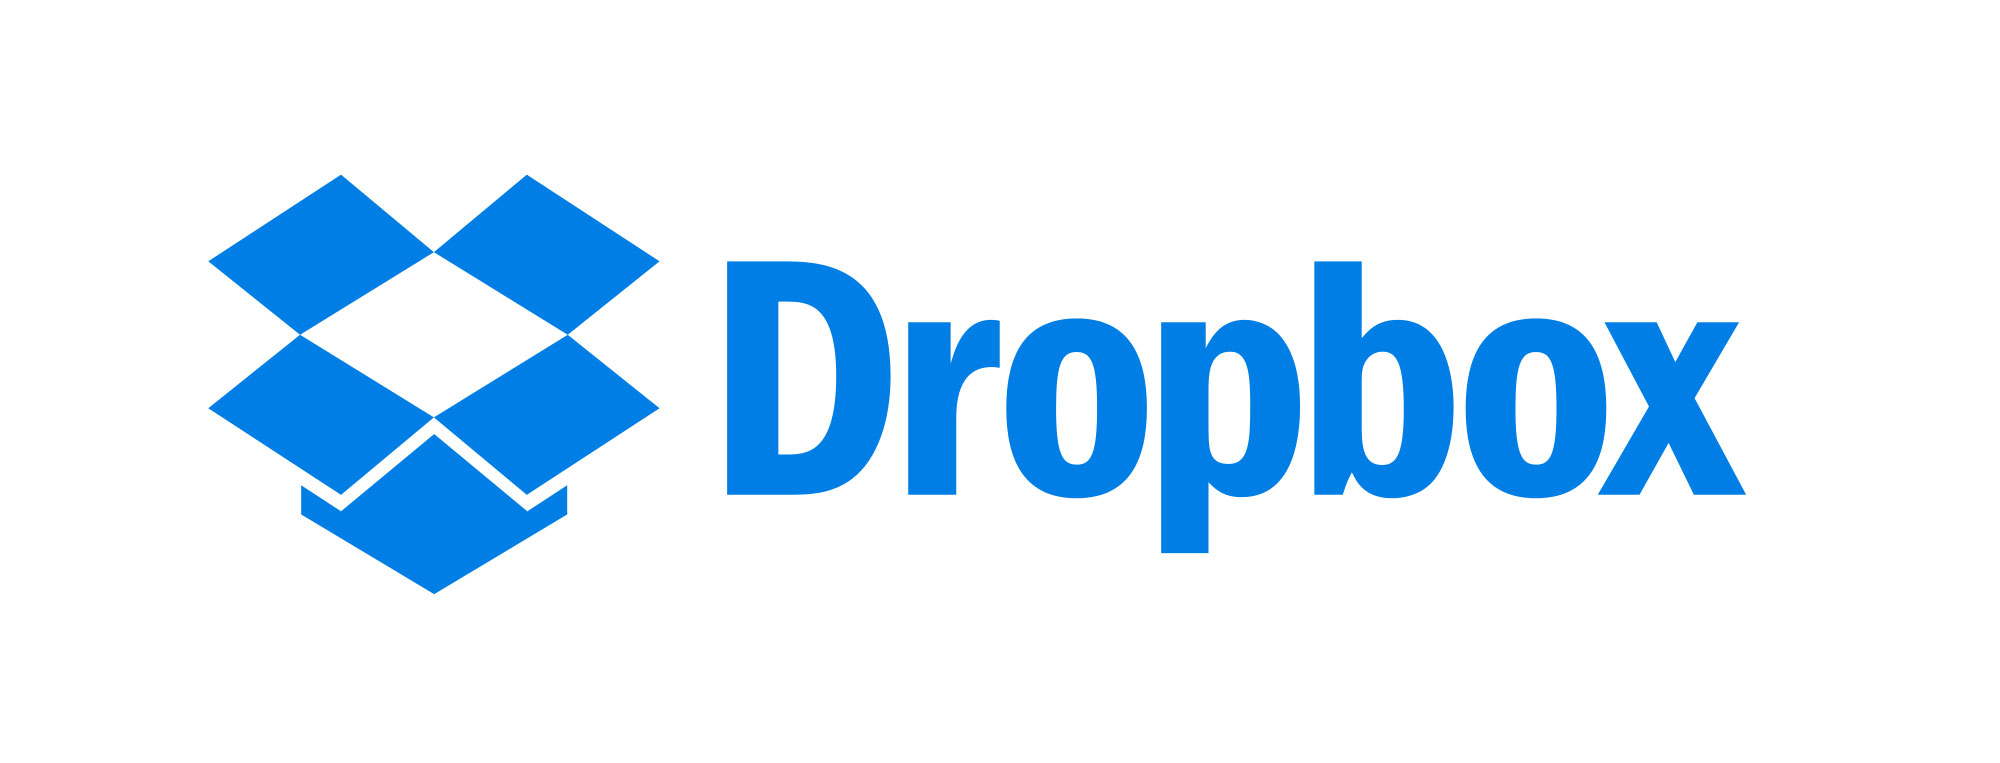 Dropbox: aggionamento disponibile su Windows 10 con tante novità | Surface Phone Italia